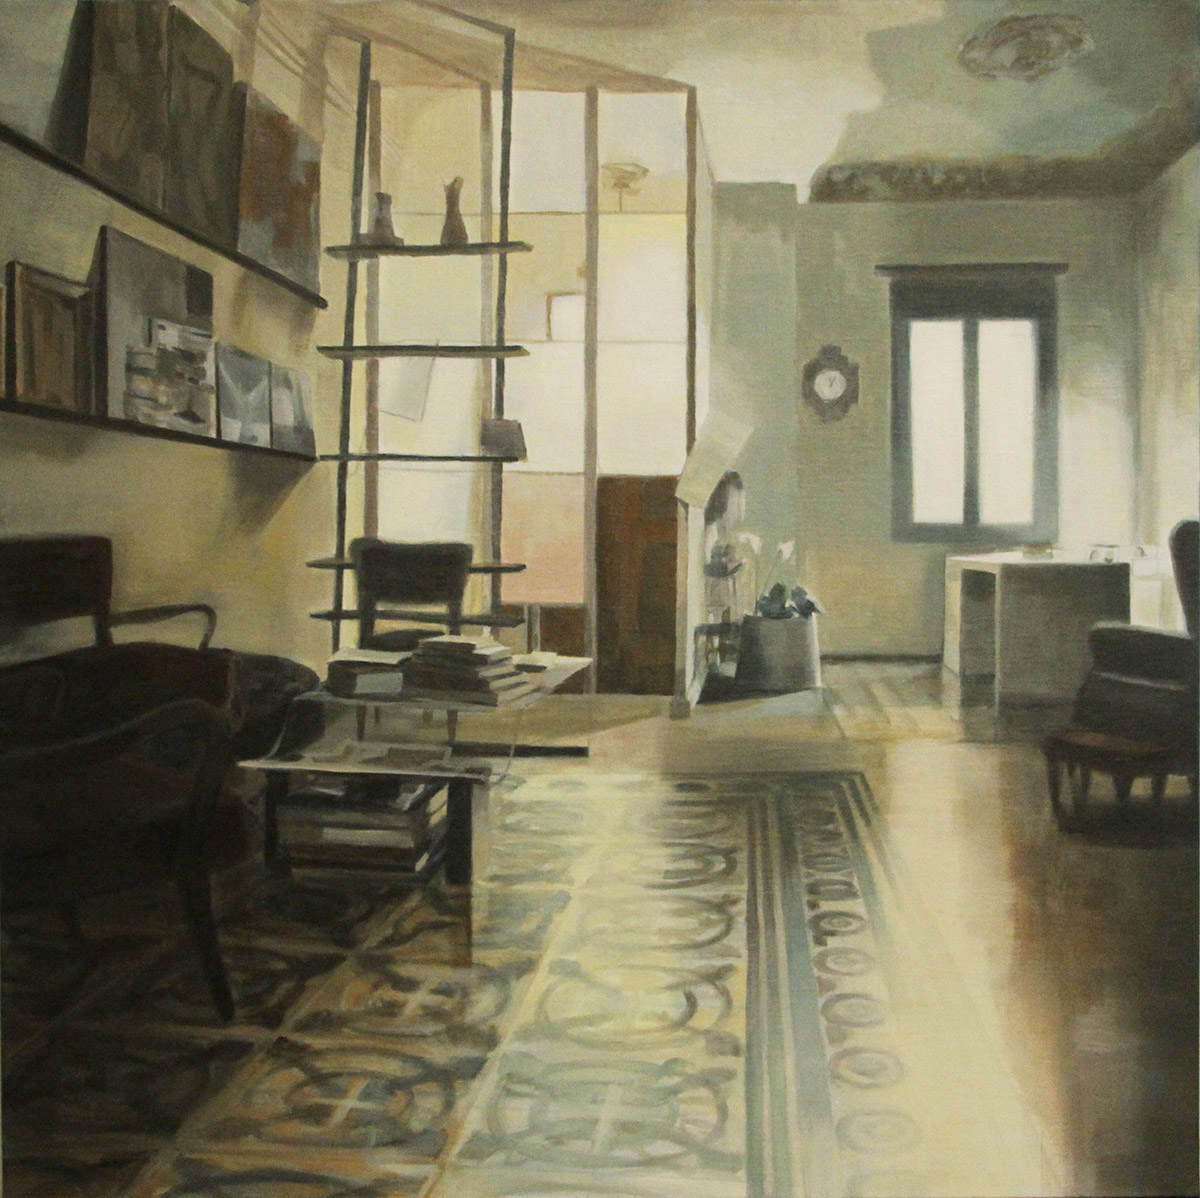 The Doctor's home, 1, 80×80 cm, 2015